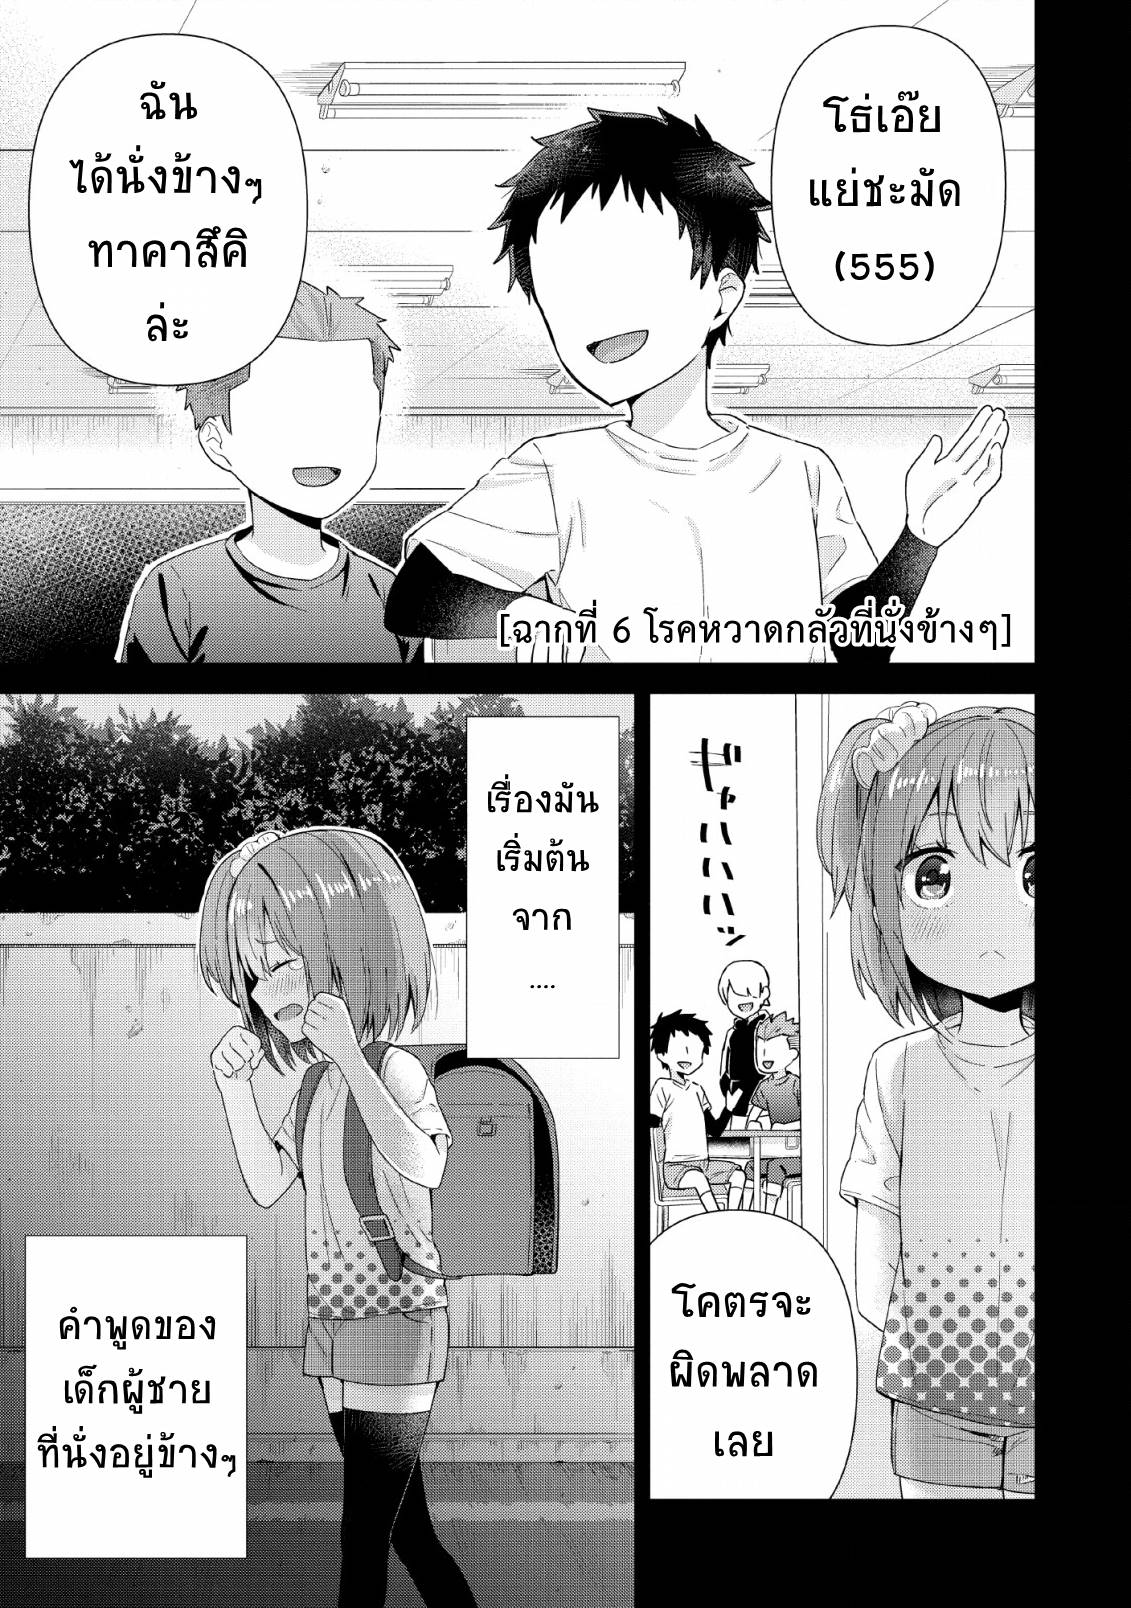 The girl next to the seat-ตอนที่ 2